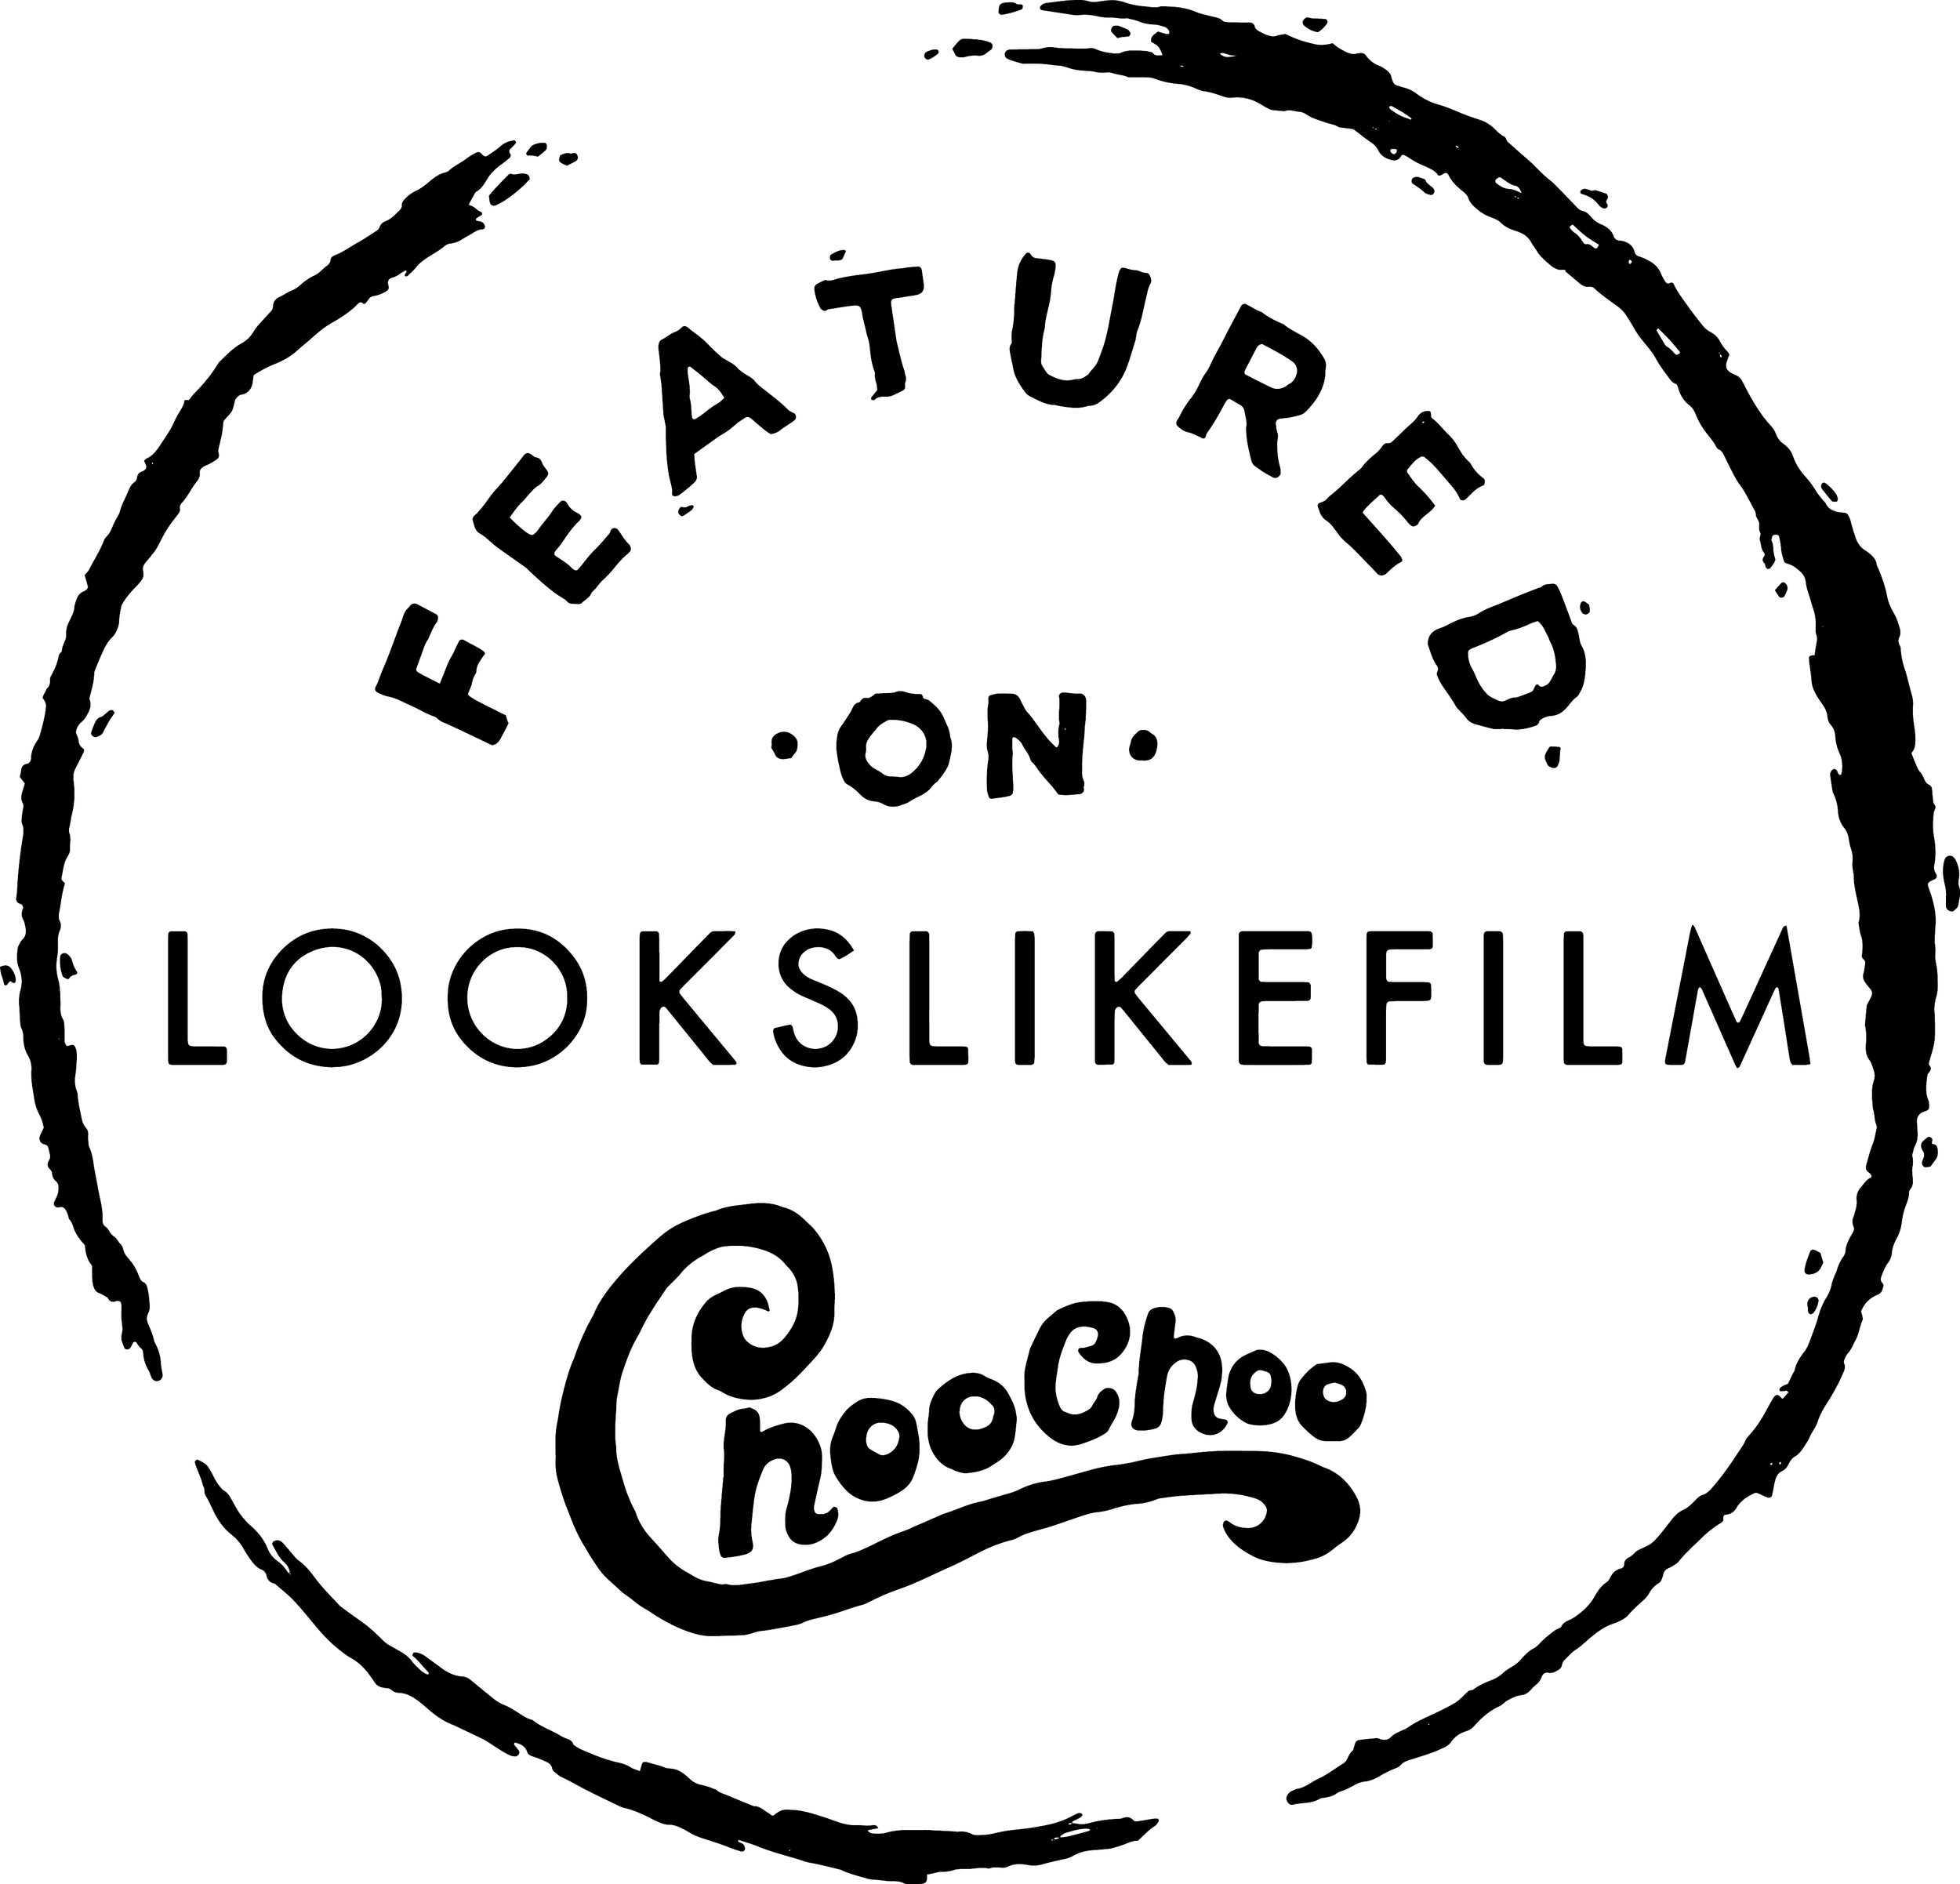 LOOKSLIKEFILM-BADGE (1) 2.png